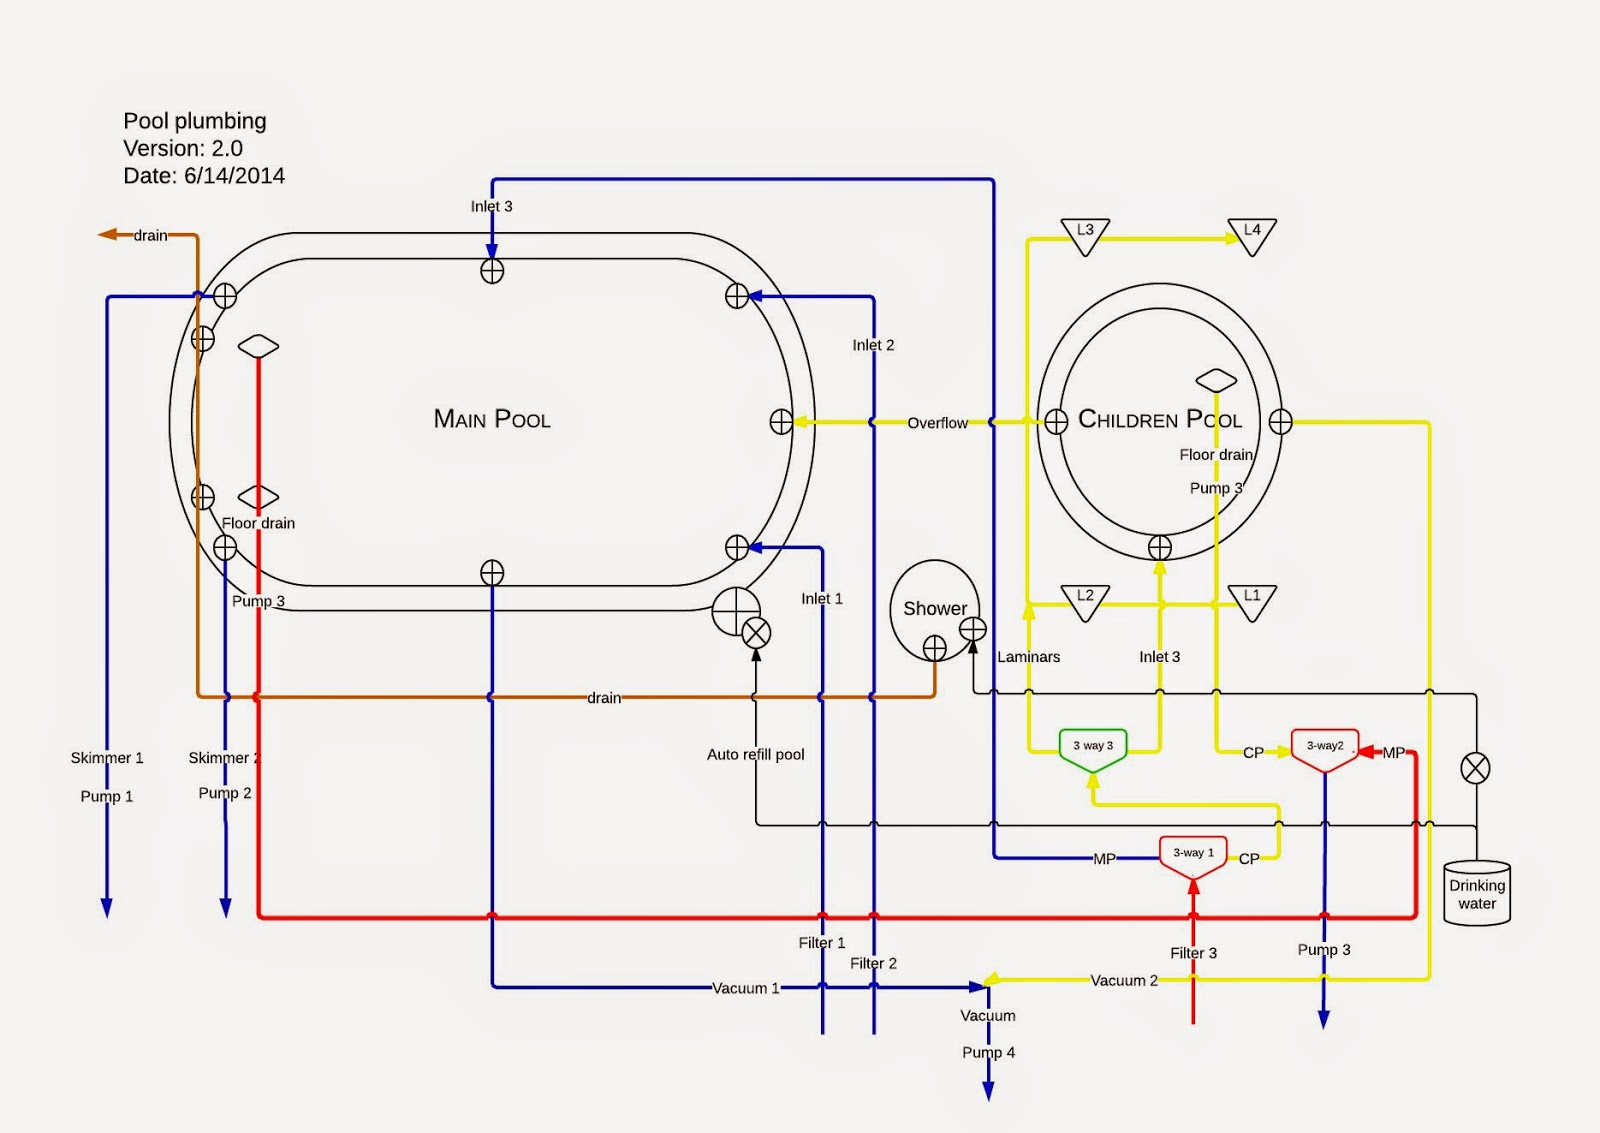 swimming pool water flow diagram visio sequence library valve schematic get free image about wiring